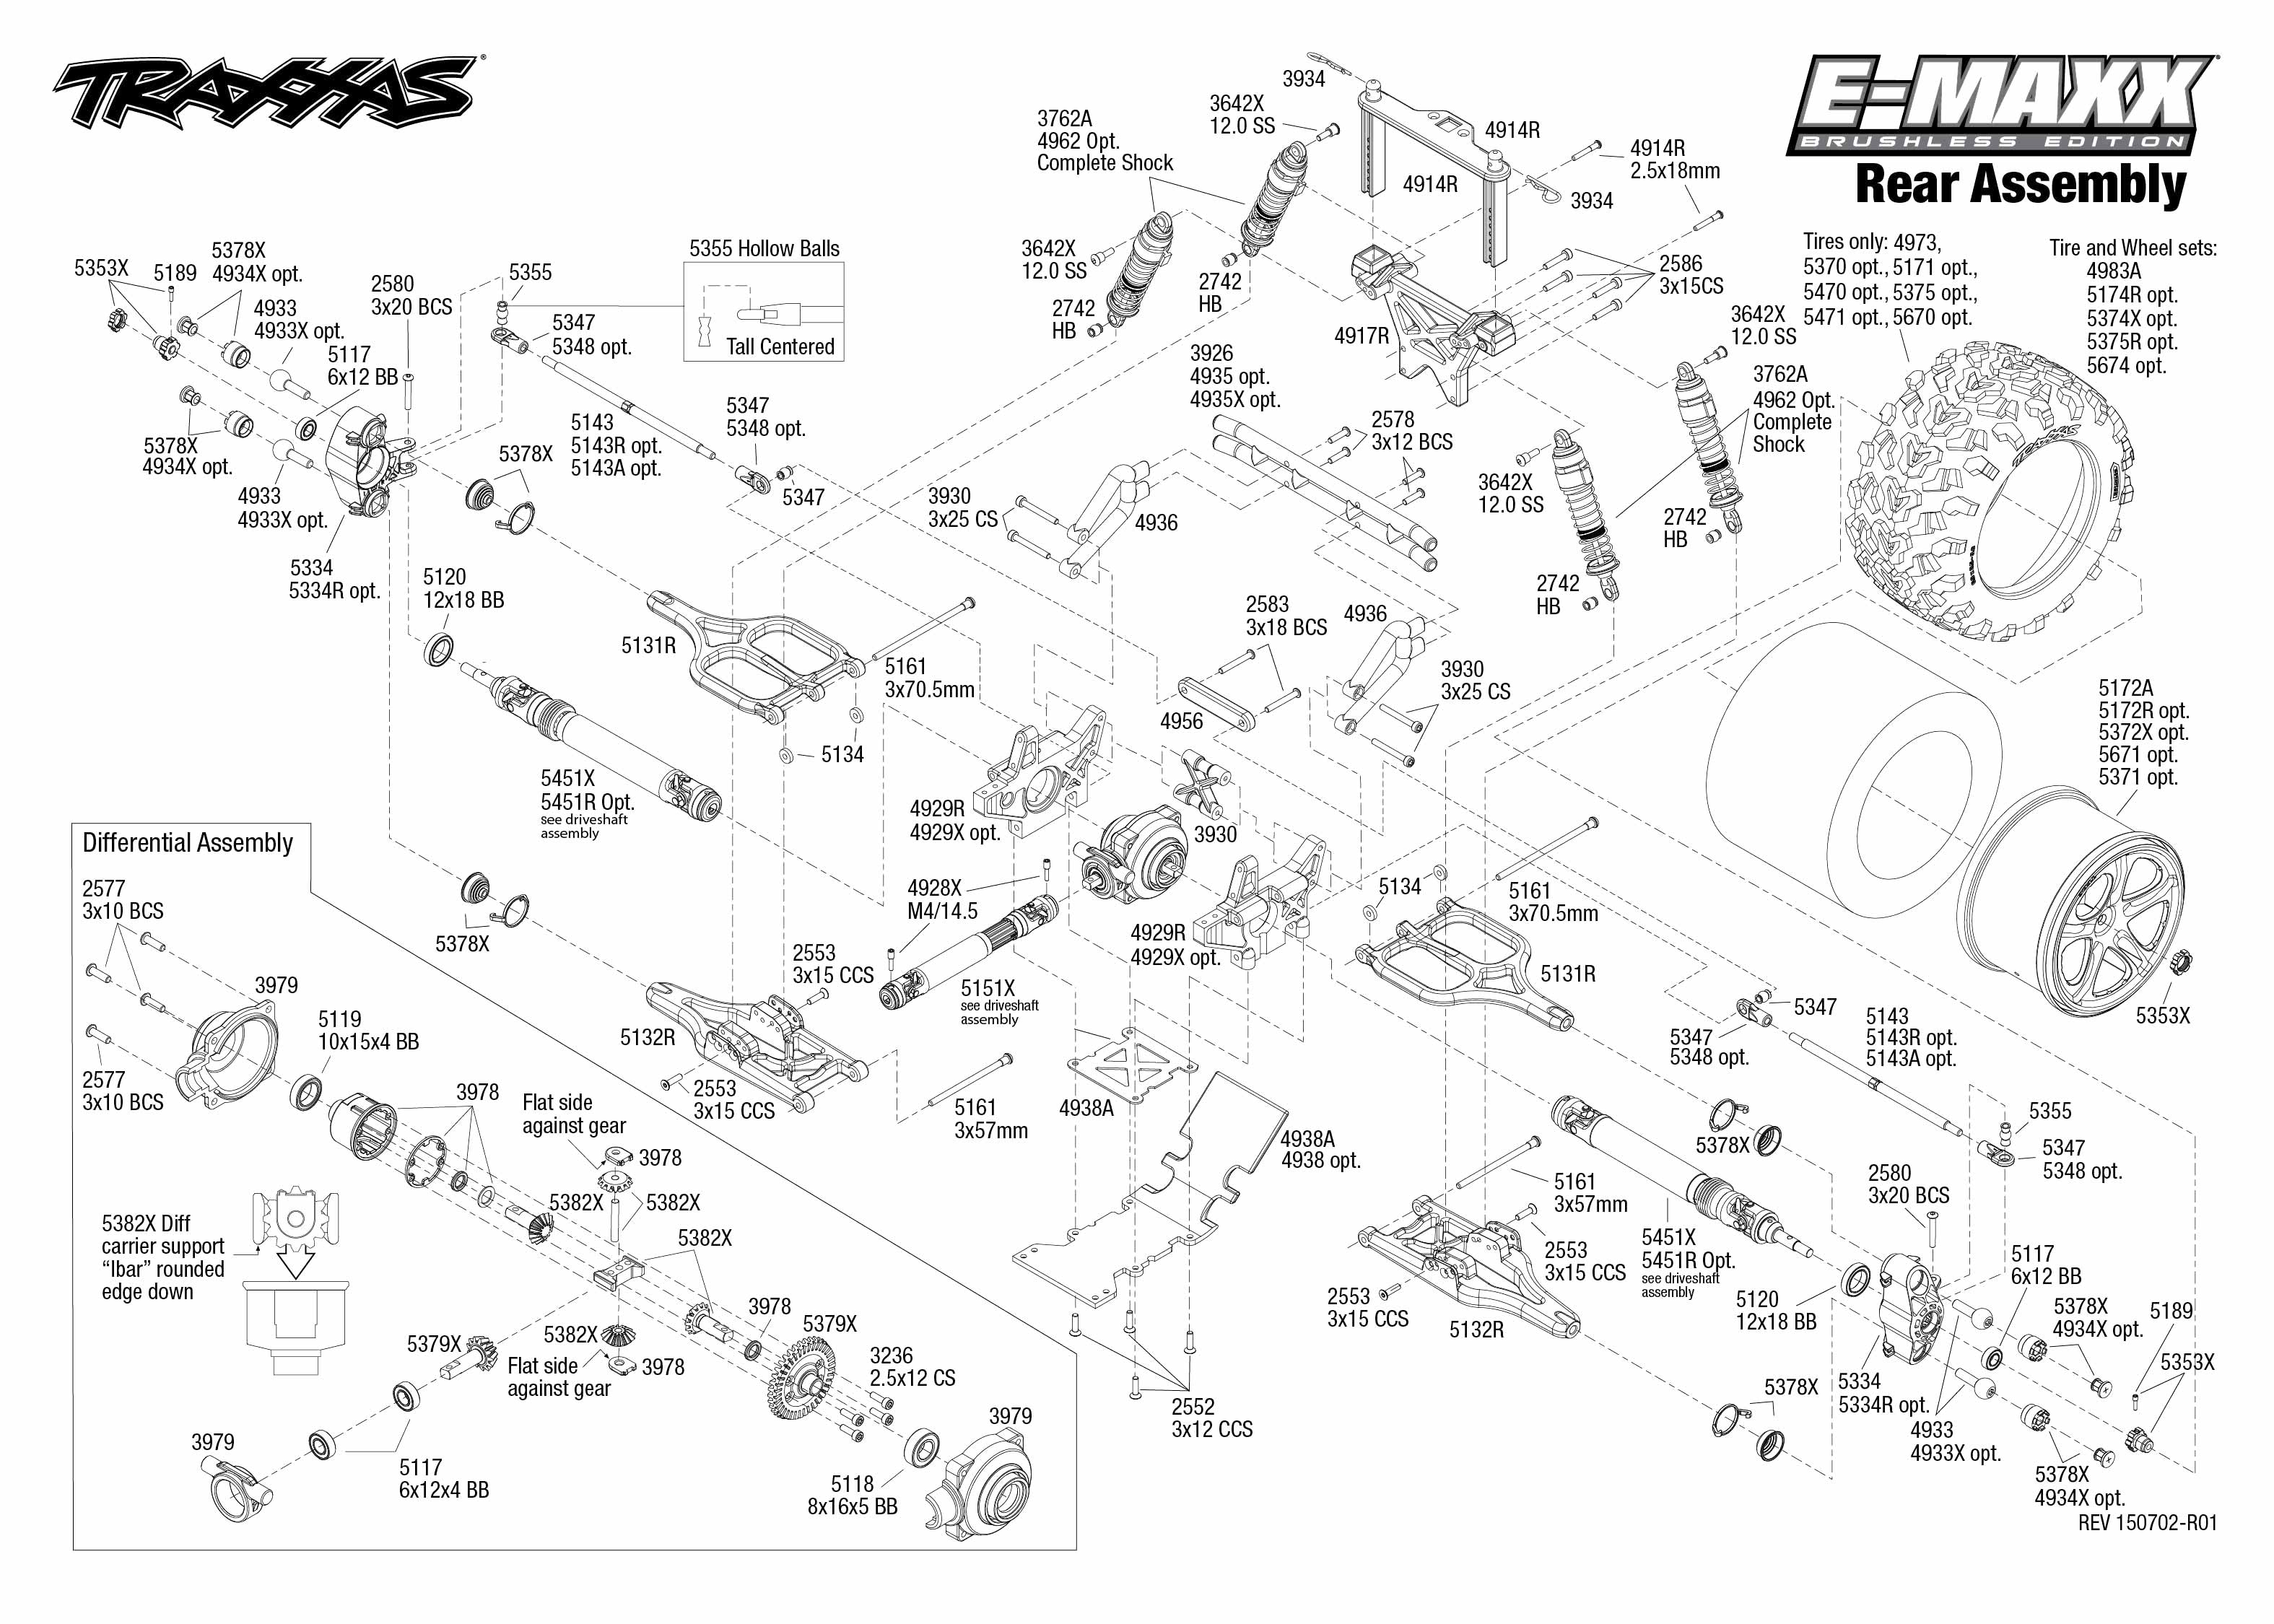 ... scintillating rustler parts diagram gallery best image diagram traxxas  revo 3.3 wiring diagram perfect revo 2